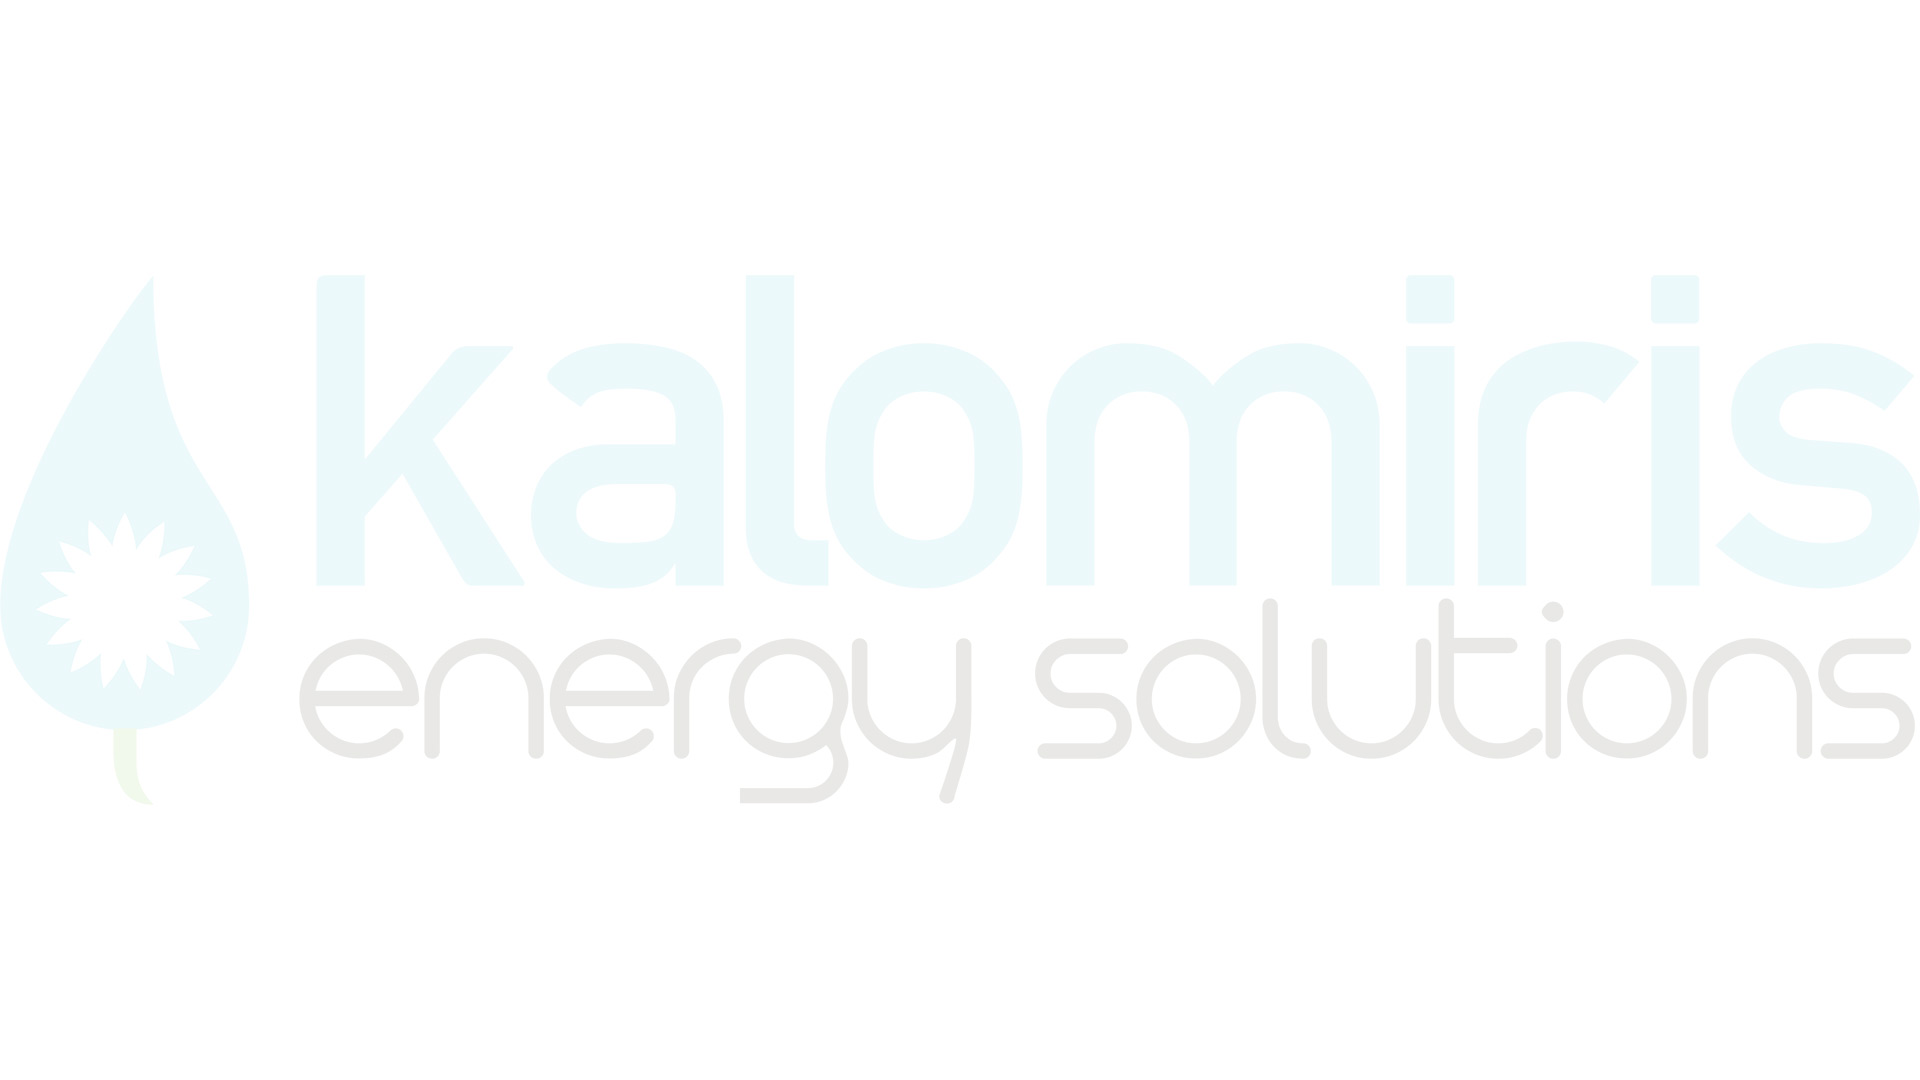 Ceiling Fan CASAFAN ECO NEO II 132 WE Beech /Maple 52 (132cm)